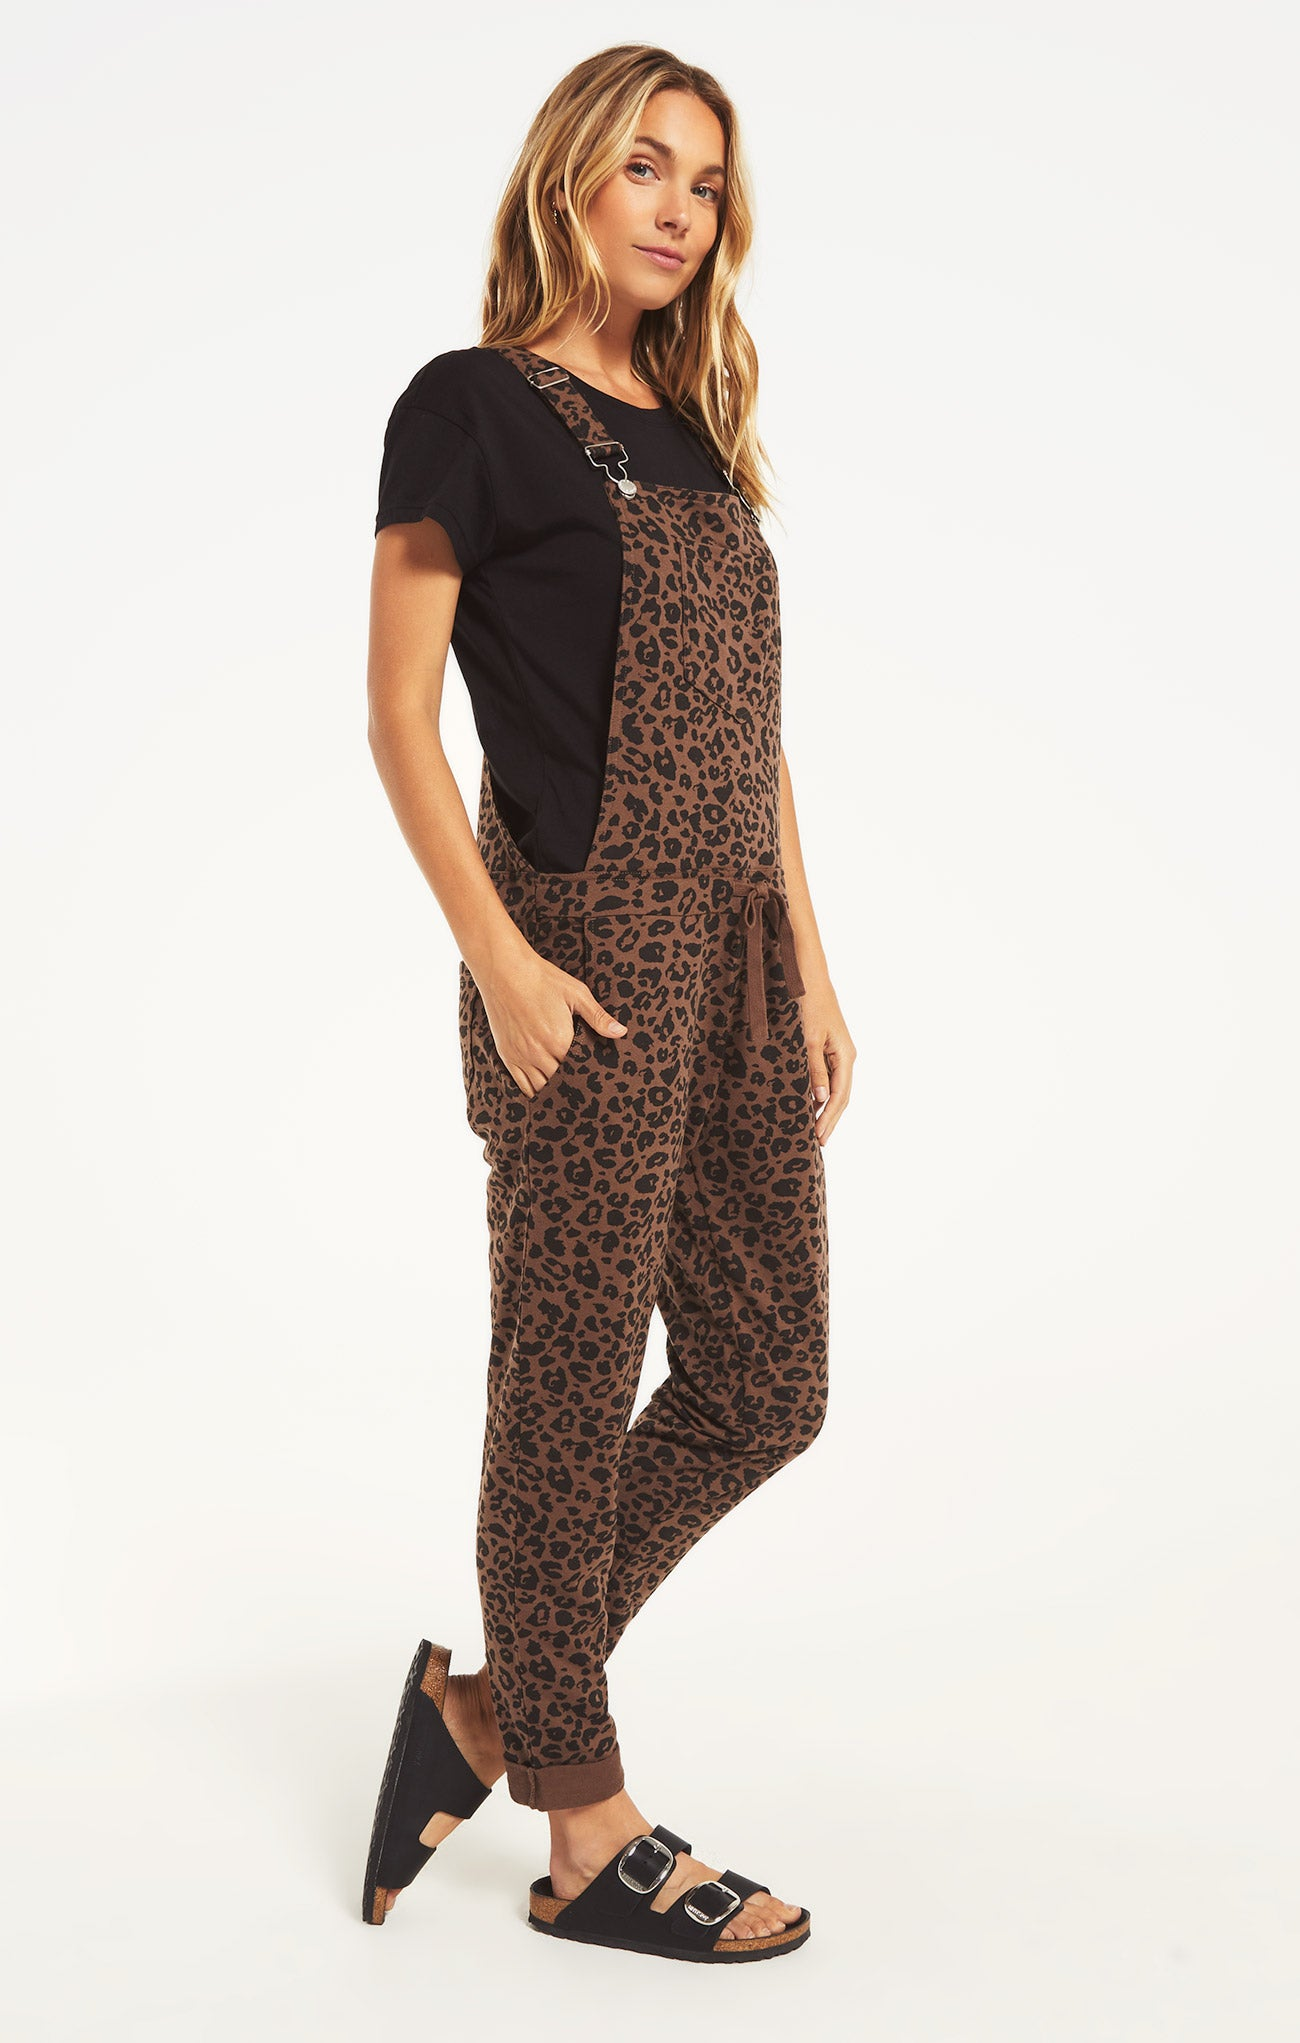 Pants Leopard Overalls French Roast